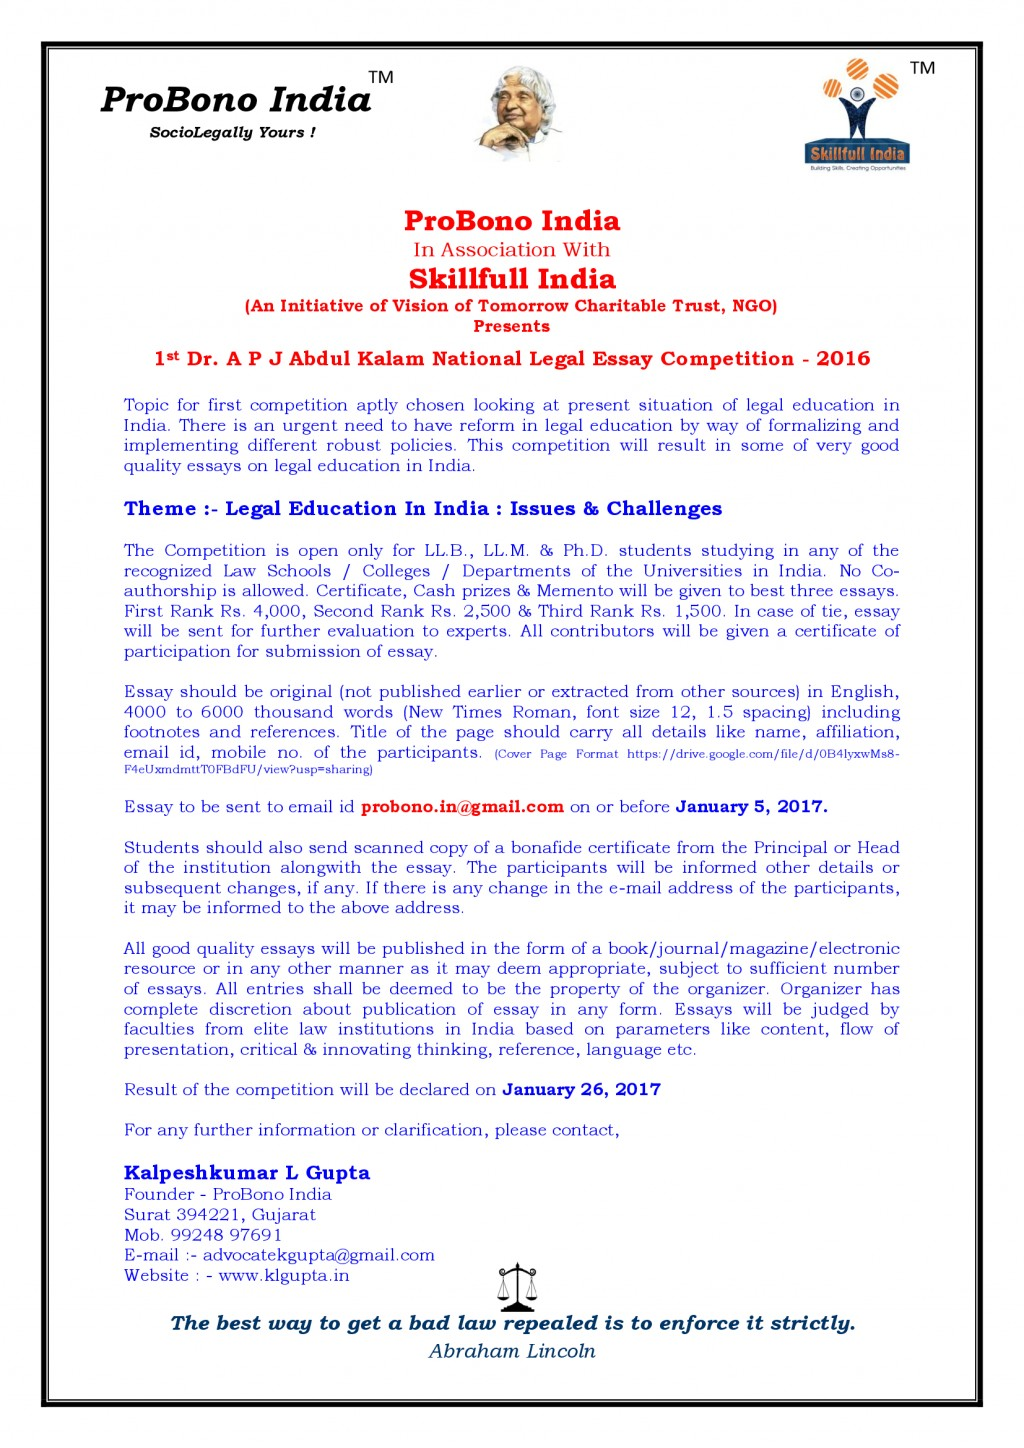 012 Essay Example Font Size 1st Dr P J Abdul Kalam National Level Competition With Skillfull Stunning Formal Apa Large